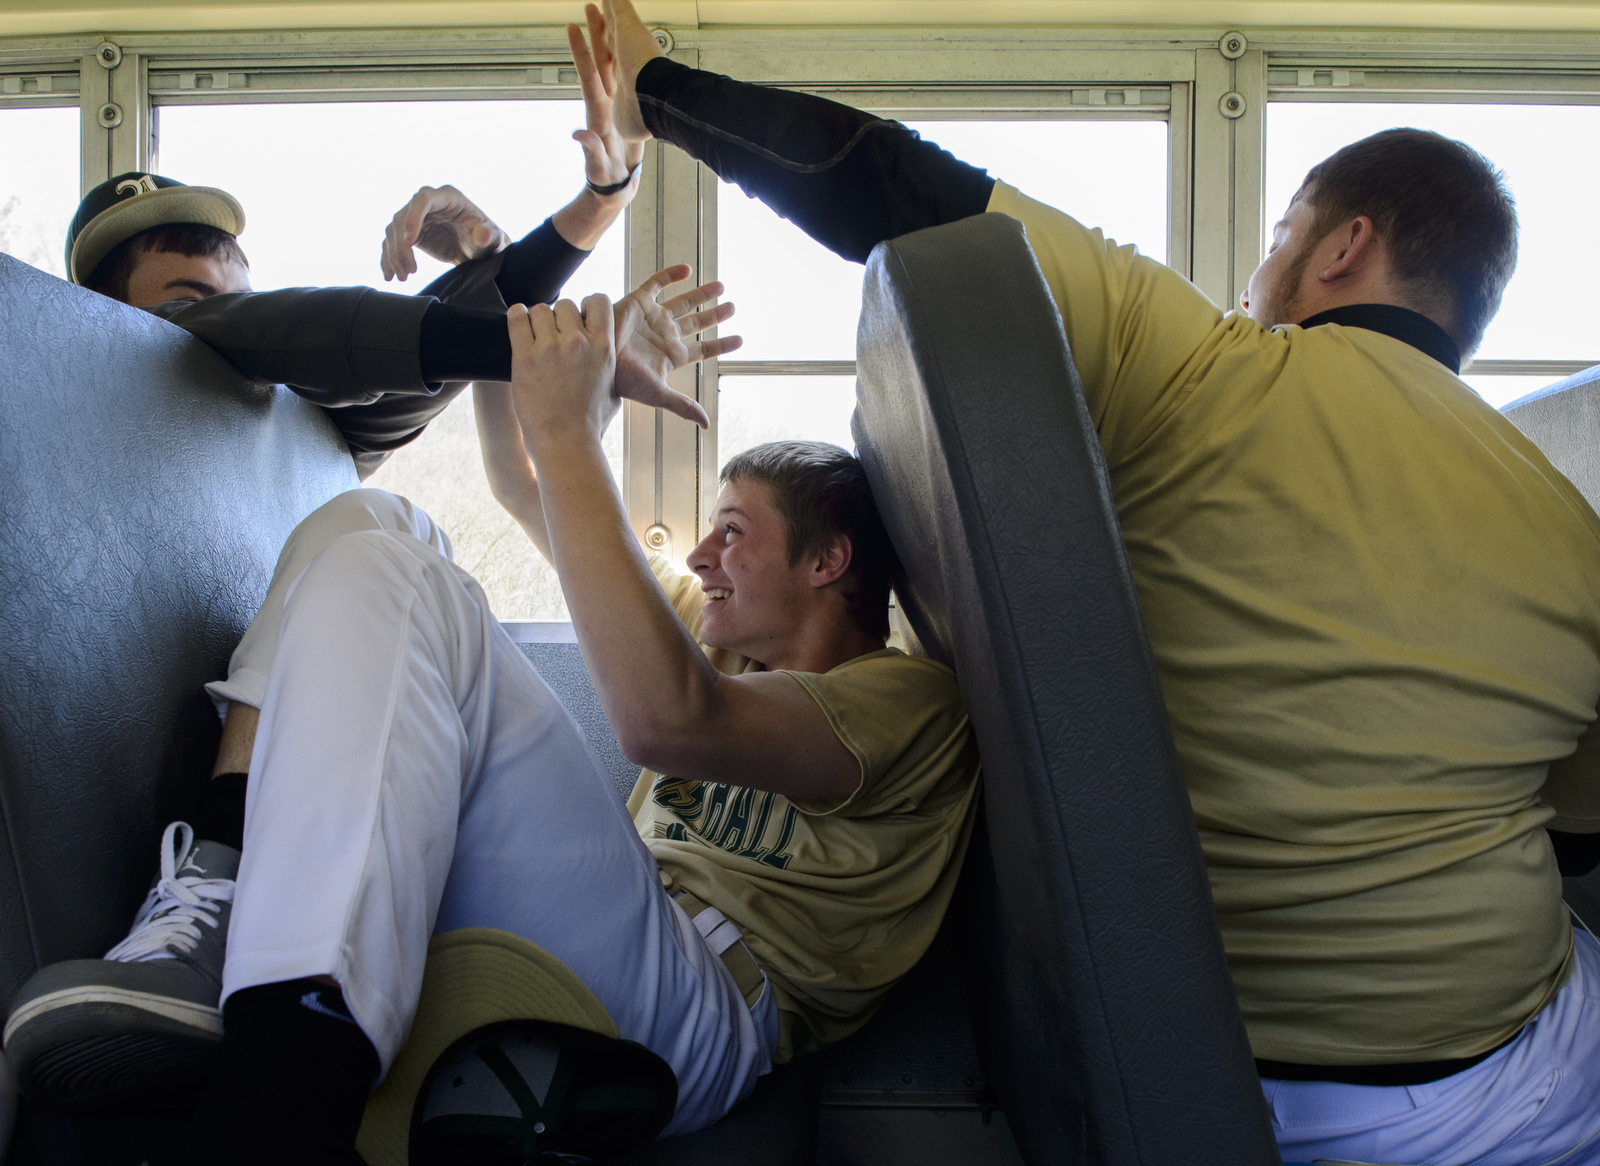 """Brendan Sano and Colter Thompson team up on Ryan Luehrman to bug him and interrupt his sleep on the bus ride to Vinton County High School. Thompson was reading The Adventures of Huckleberry Fin until Sano shouted, """"Colter help me!"""" Thompson turned around and helped Sano torment Luehrman. While boarding the bus for the ride home, Sano joked with Luehrman and told him to sit in front of him. Luehrman said laughing, """"No way, I'm sitting in the back."""""""